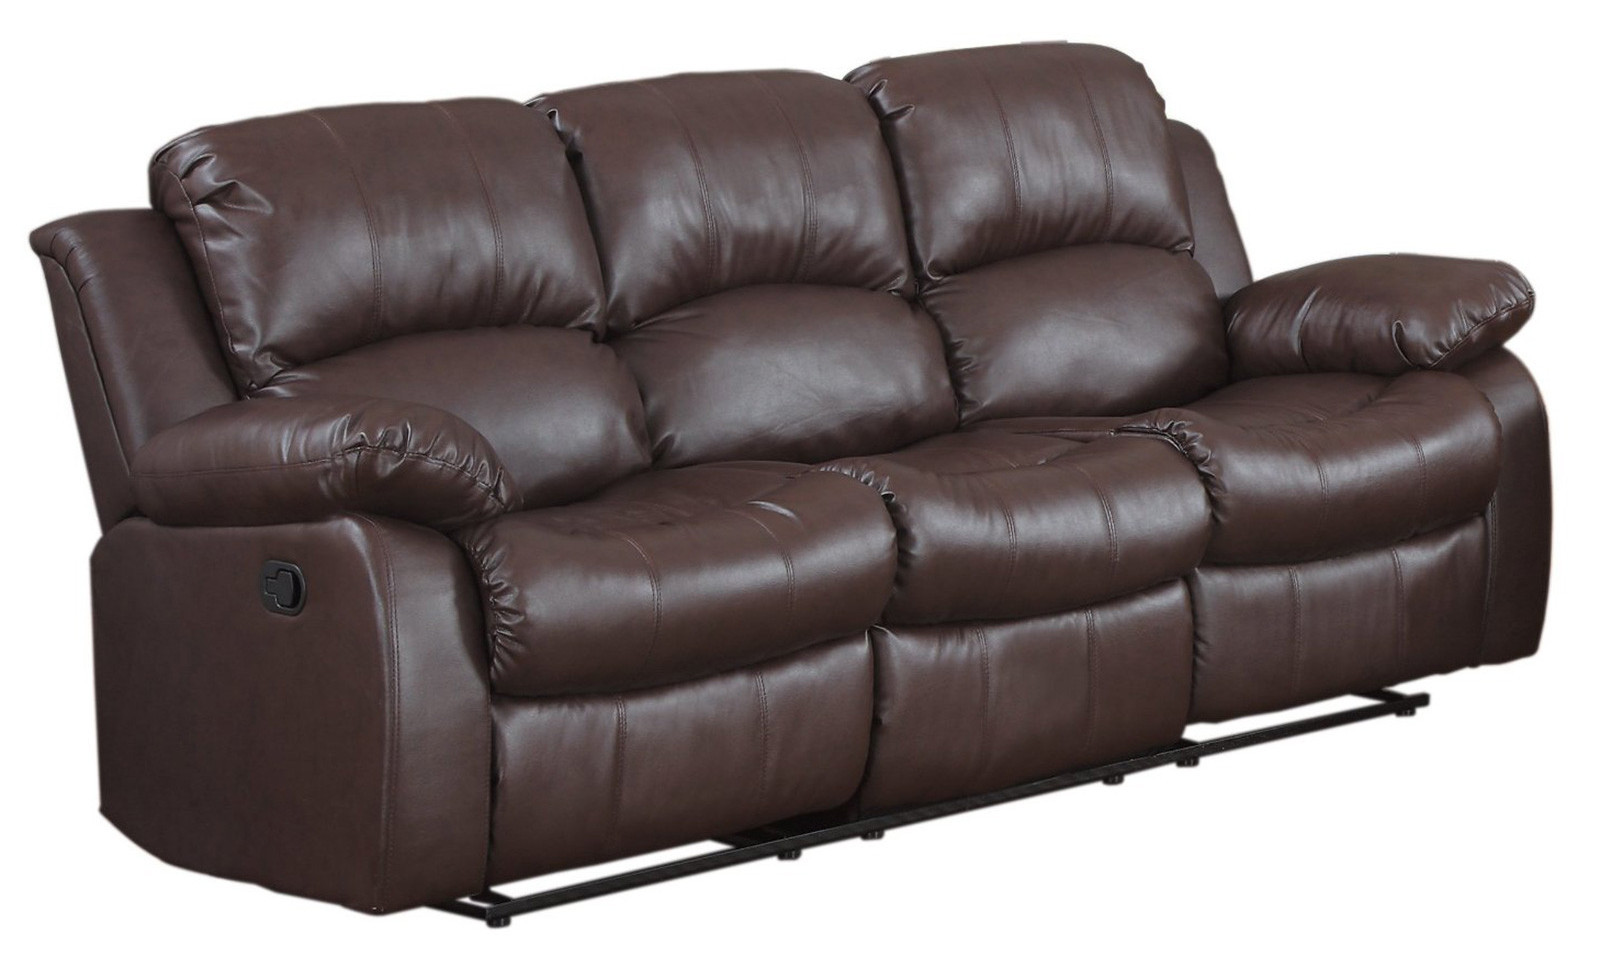 Sofa With Recliner Classic 3 Seat Bonded Leather Double Recliner Sofa